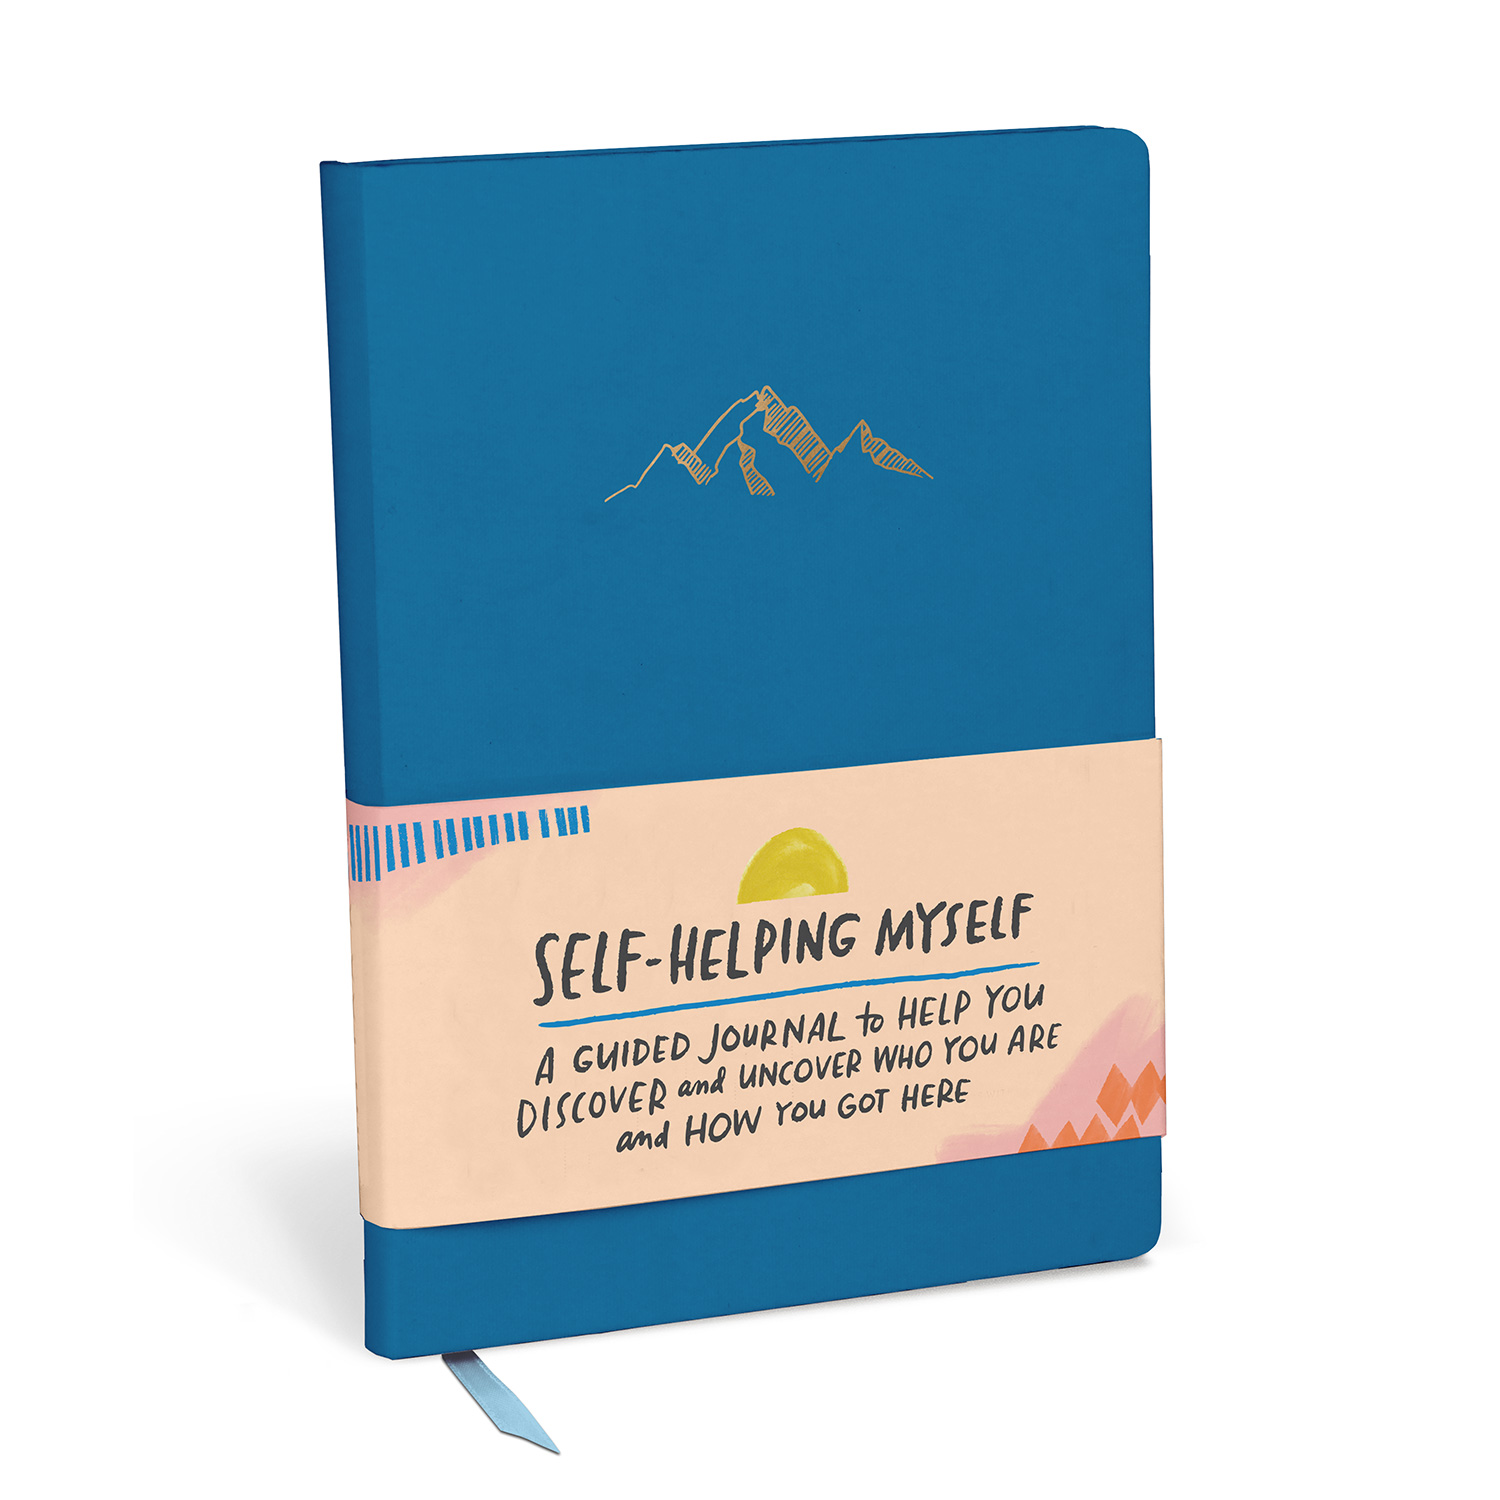 Guided Journals:  Self Helping Myself